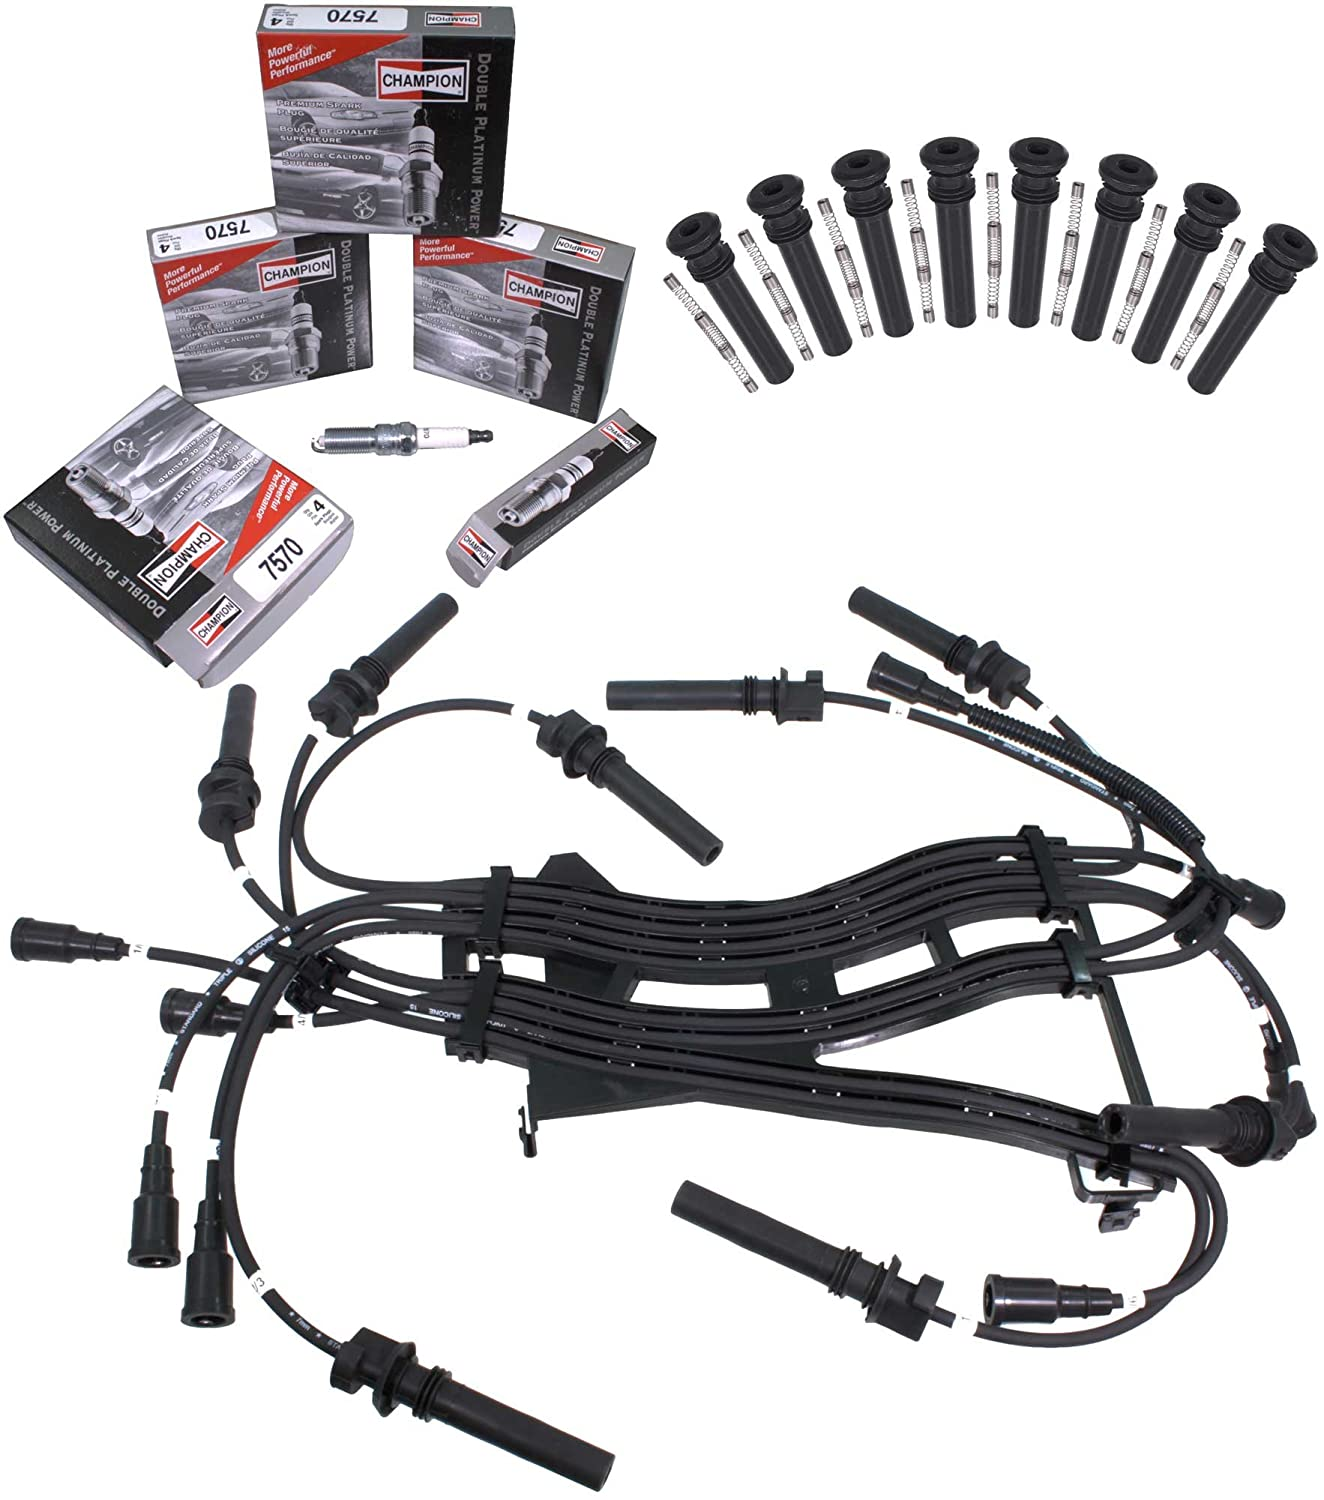 2004 Dodge Ram Hemi Spark Plug Wire Diagram 43 Wiring 2005 81djnyzzpzl Sl1500 Amazon Com Apdty Tune Up Kit Includes 16 Oem Plugs